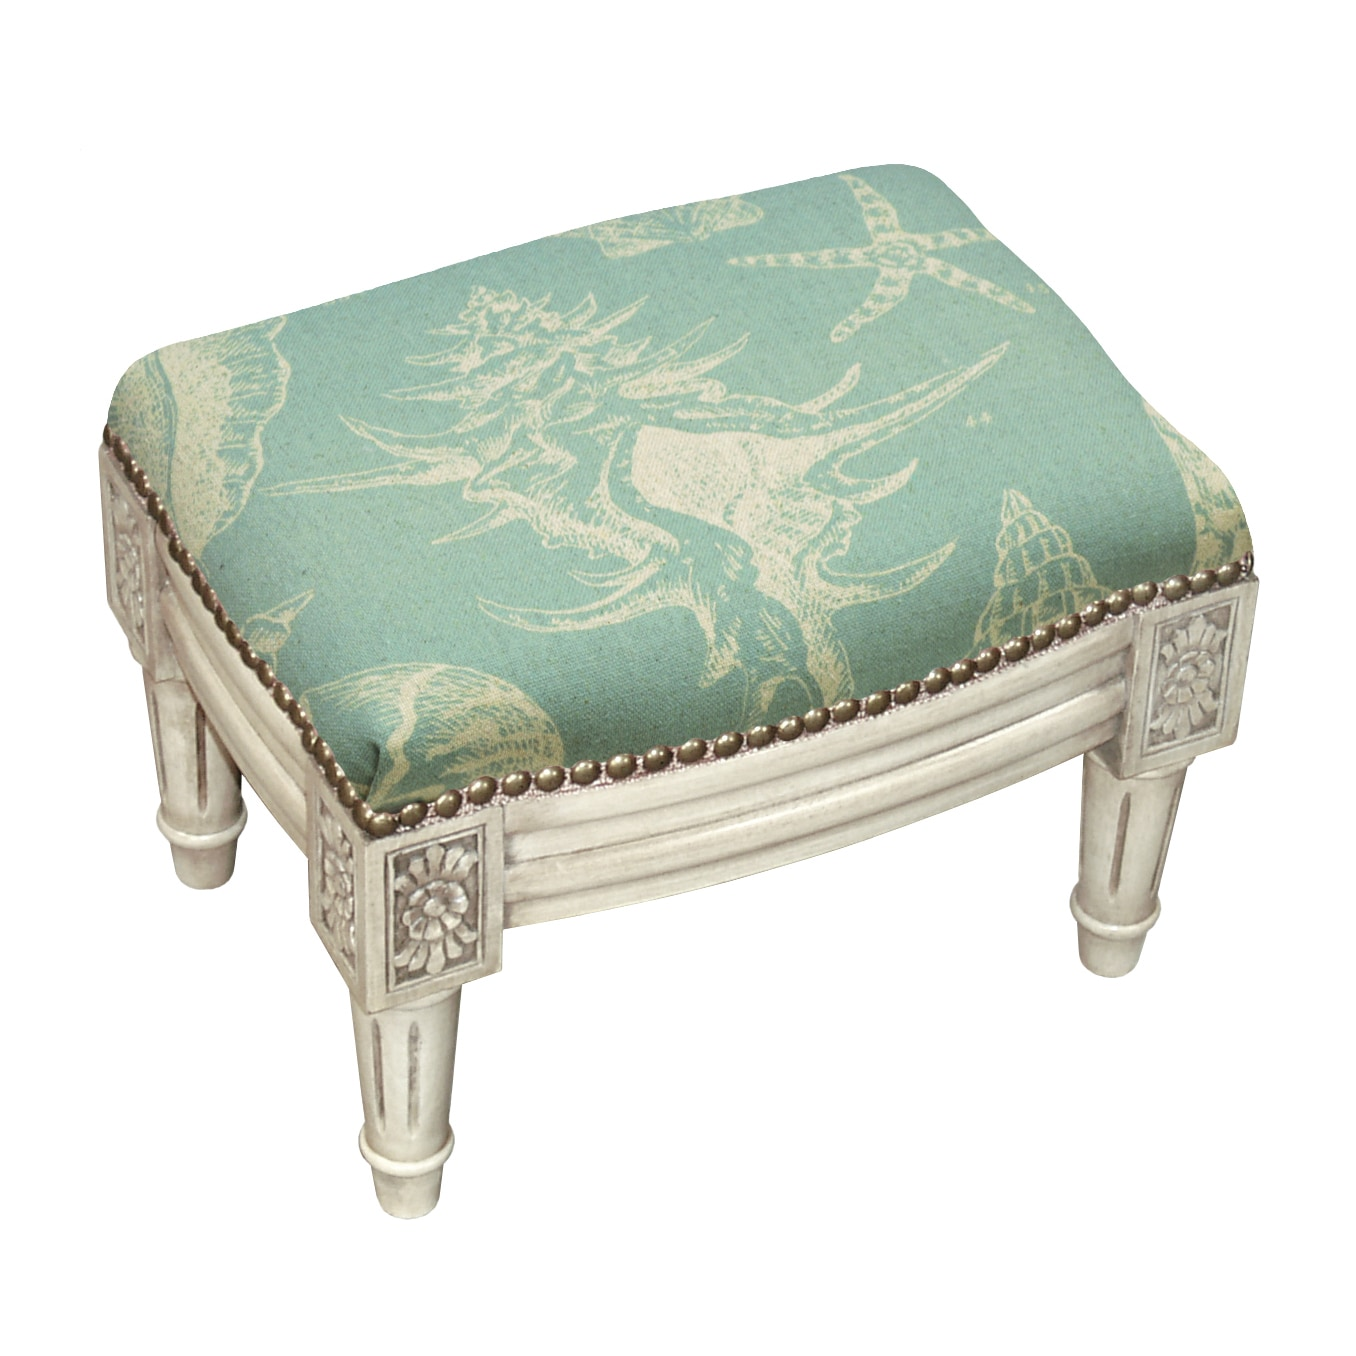 123 Creations Seashells Nail-head Trim Footstool by Overstock